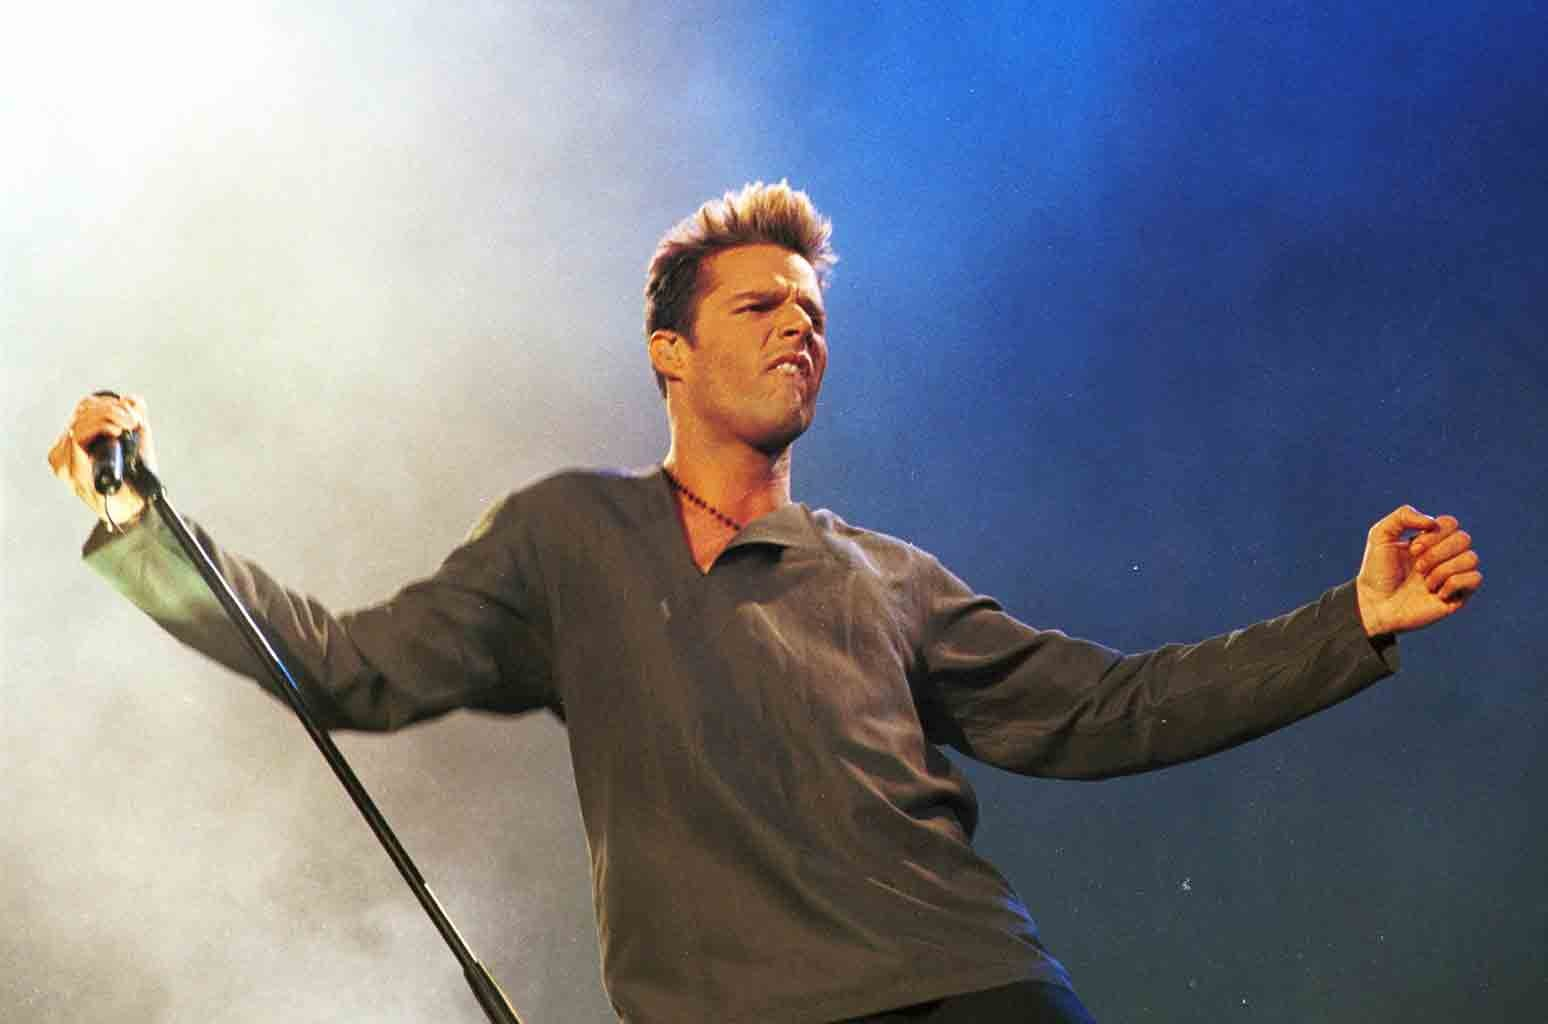 """Ricky Martin during 92.6 FM Presents """"Wango Tango Line-Up"""" at Dodger Stadium in Los Angeles."""